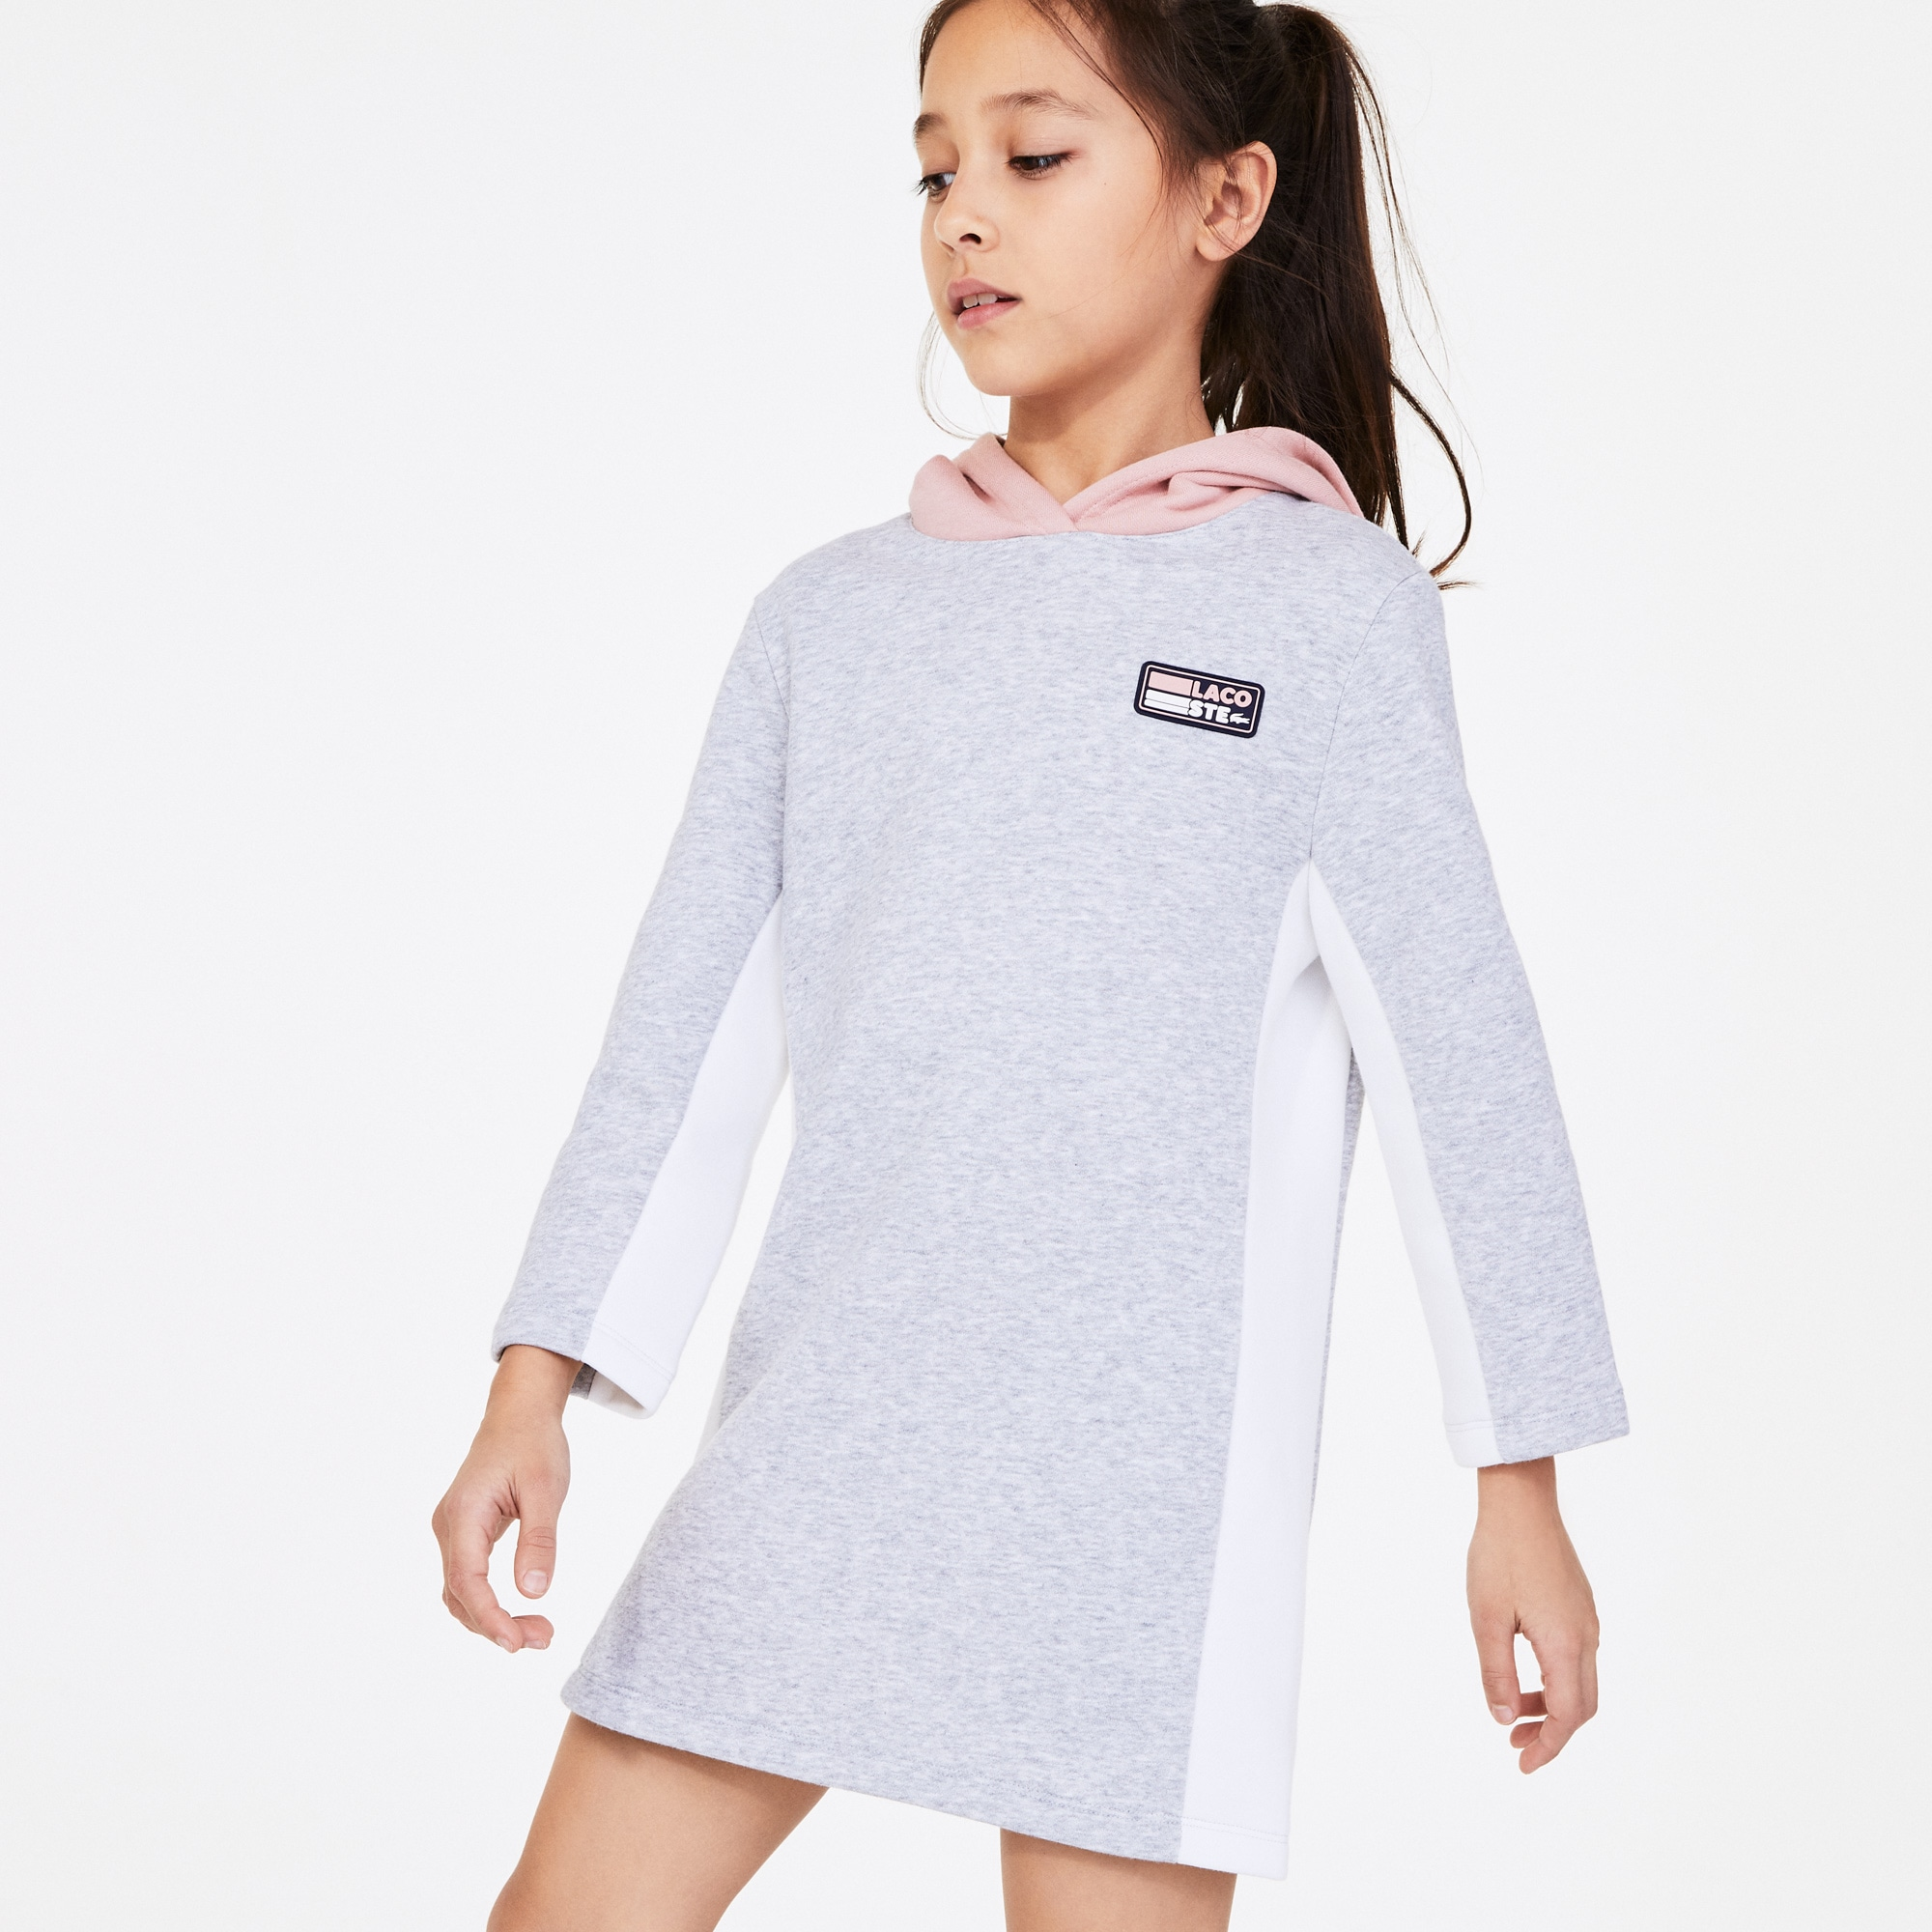 Girls 라코스테 Lacoste SPORT Colourblock Fleece Sweatshirt Dress,Grey Chine / Pink / White • ELC